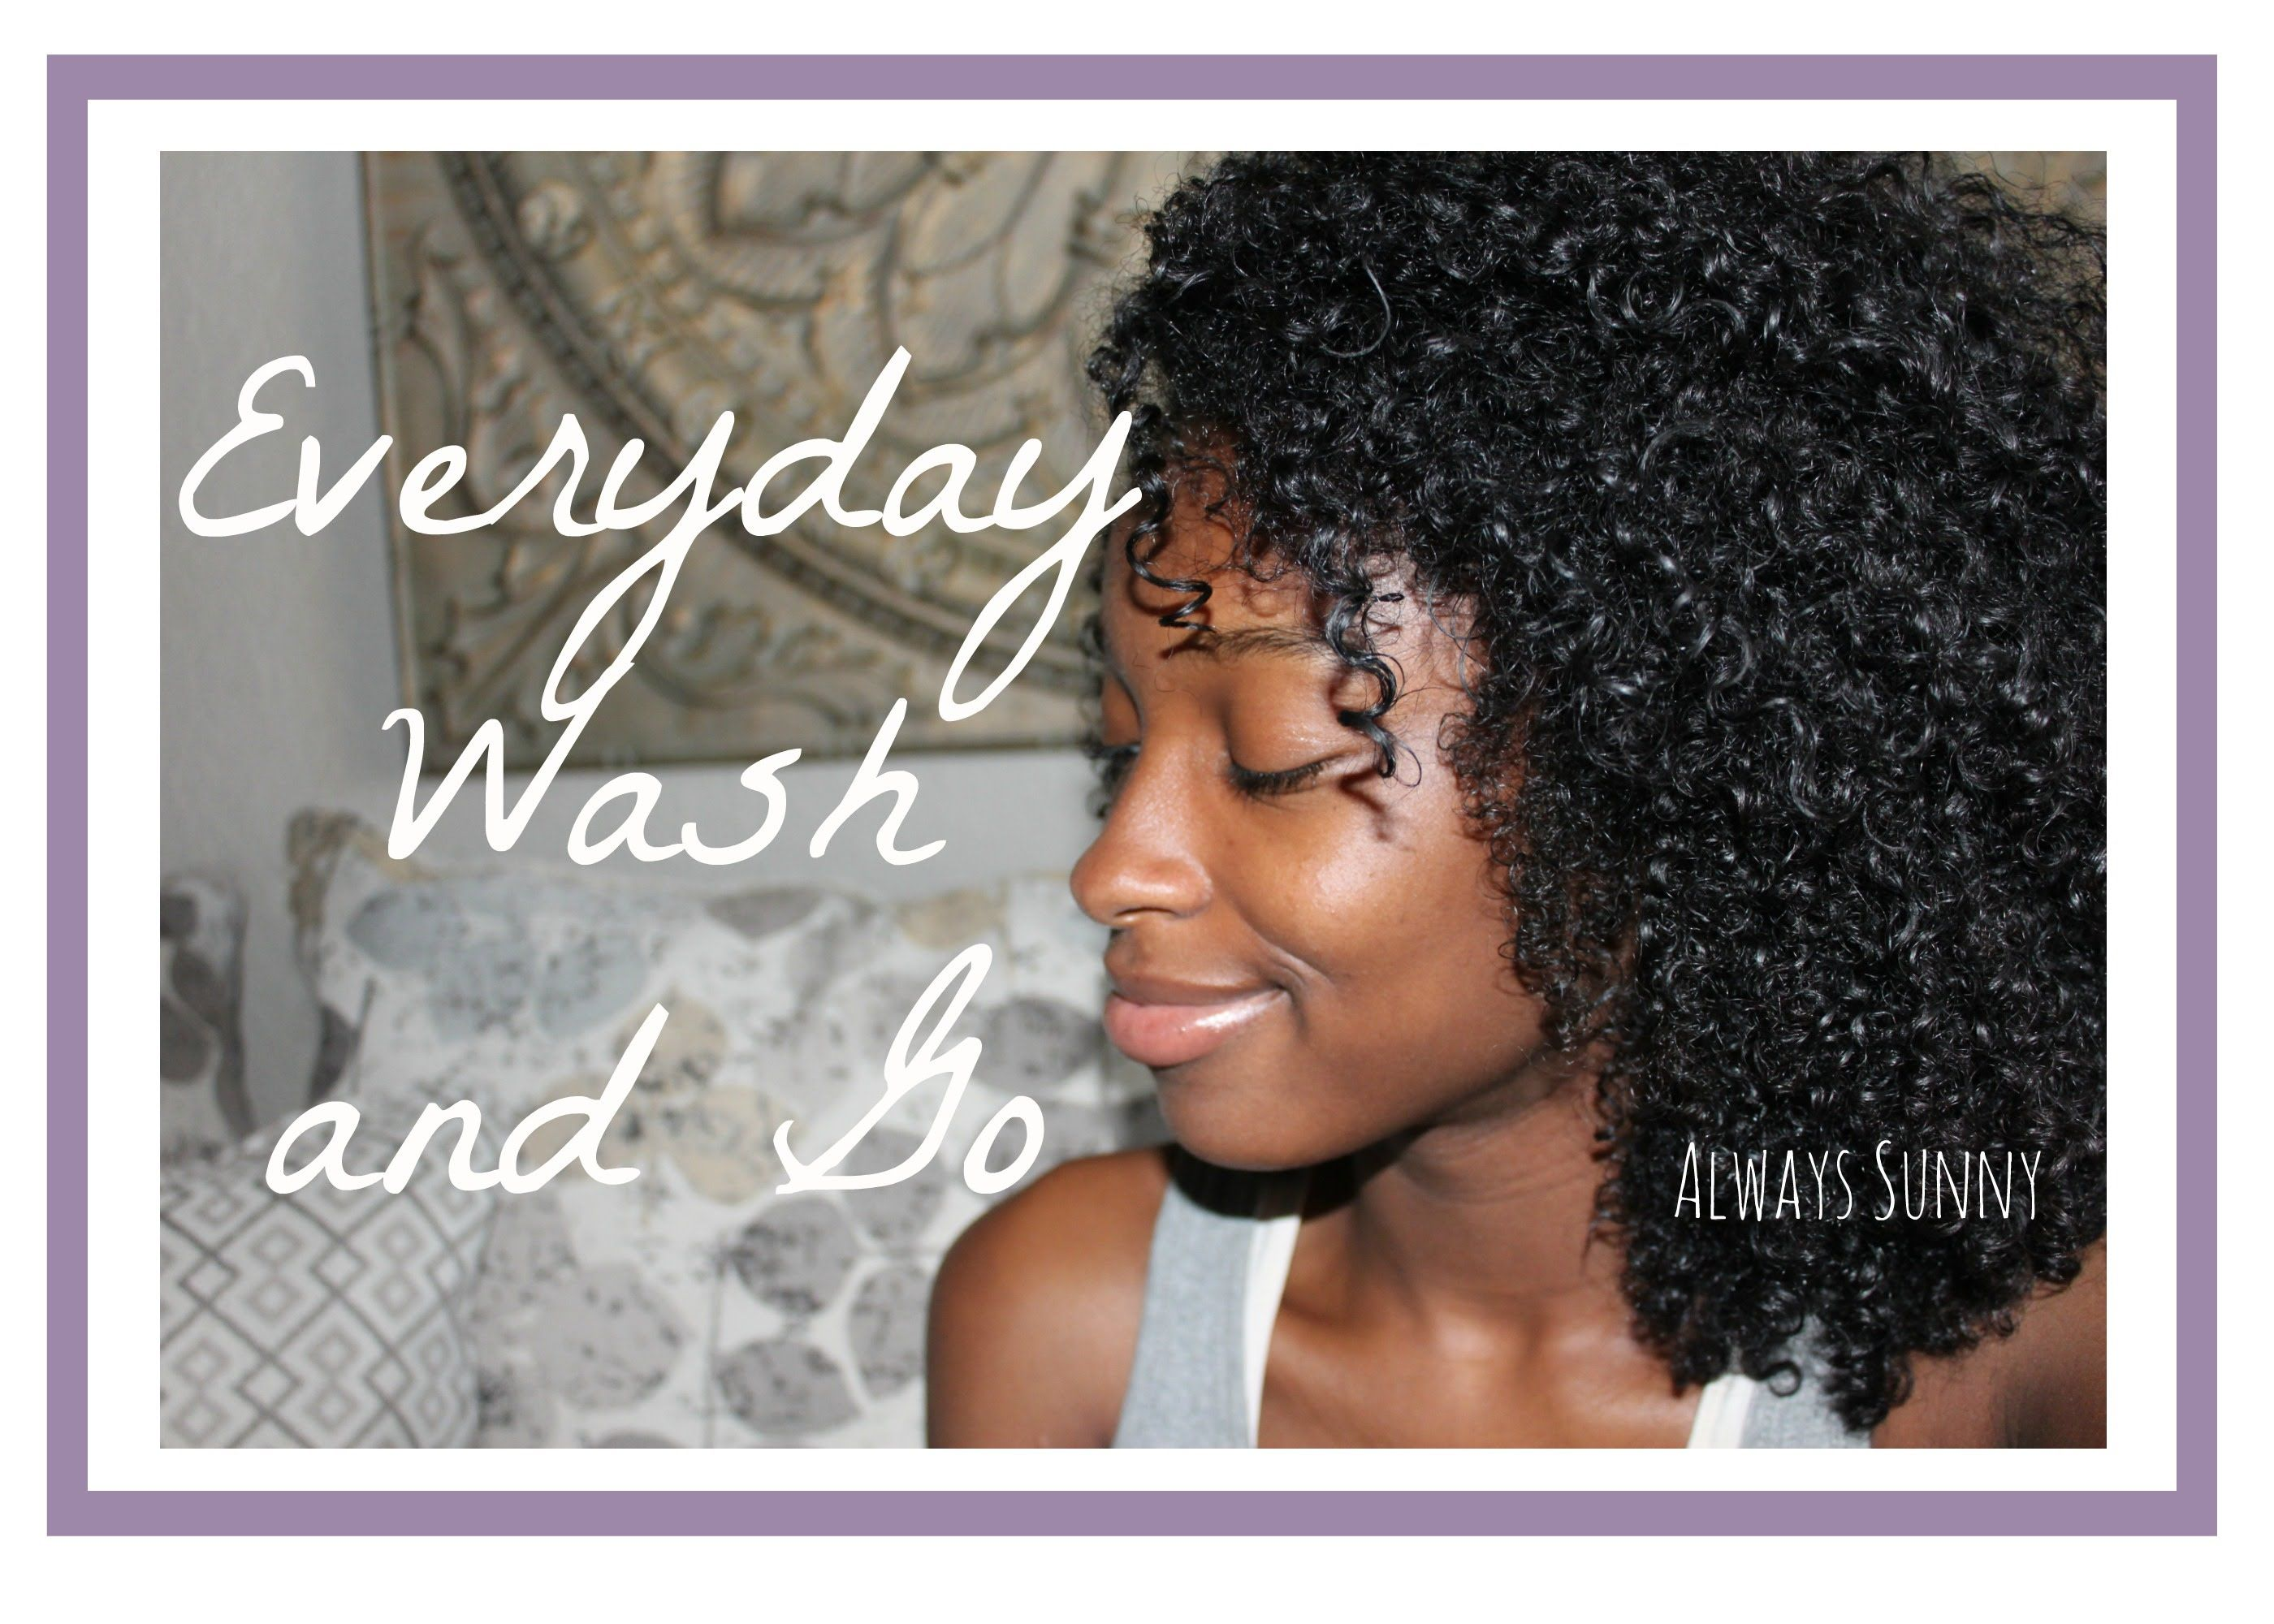 Everyday curly hair routine wash and go always sunny napstyk